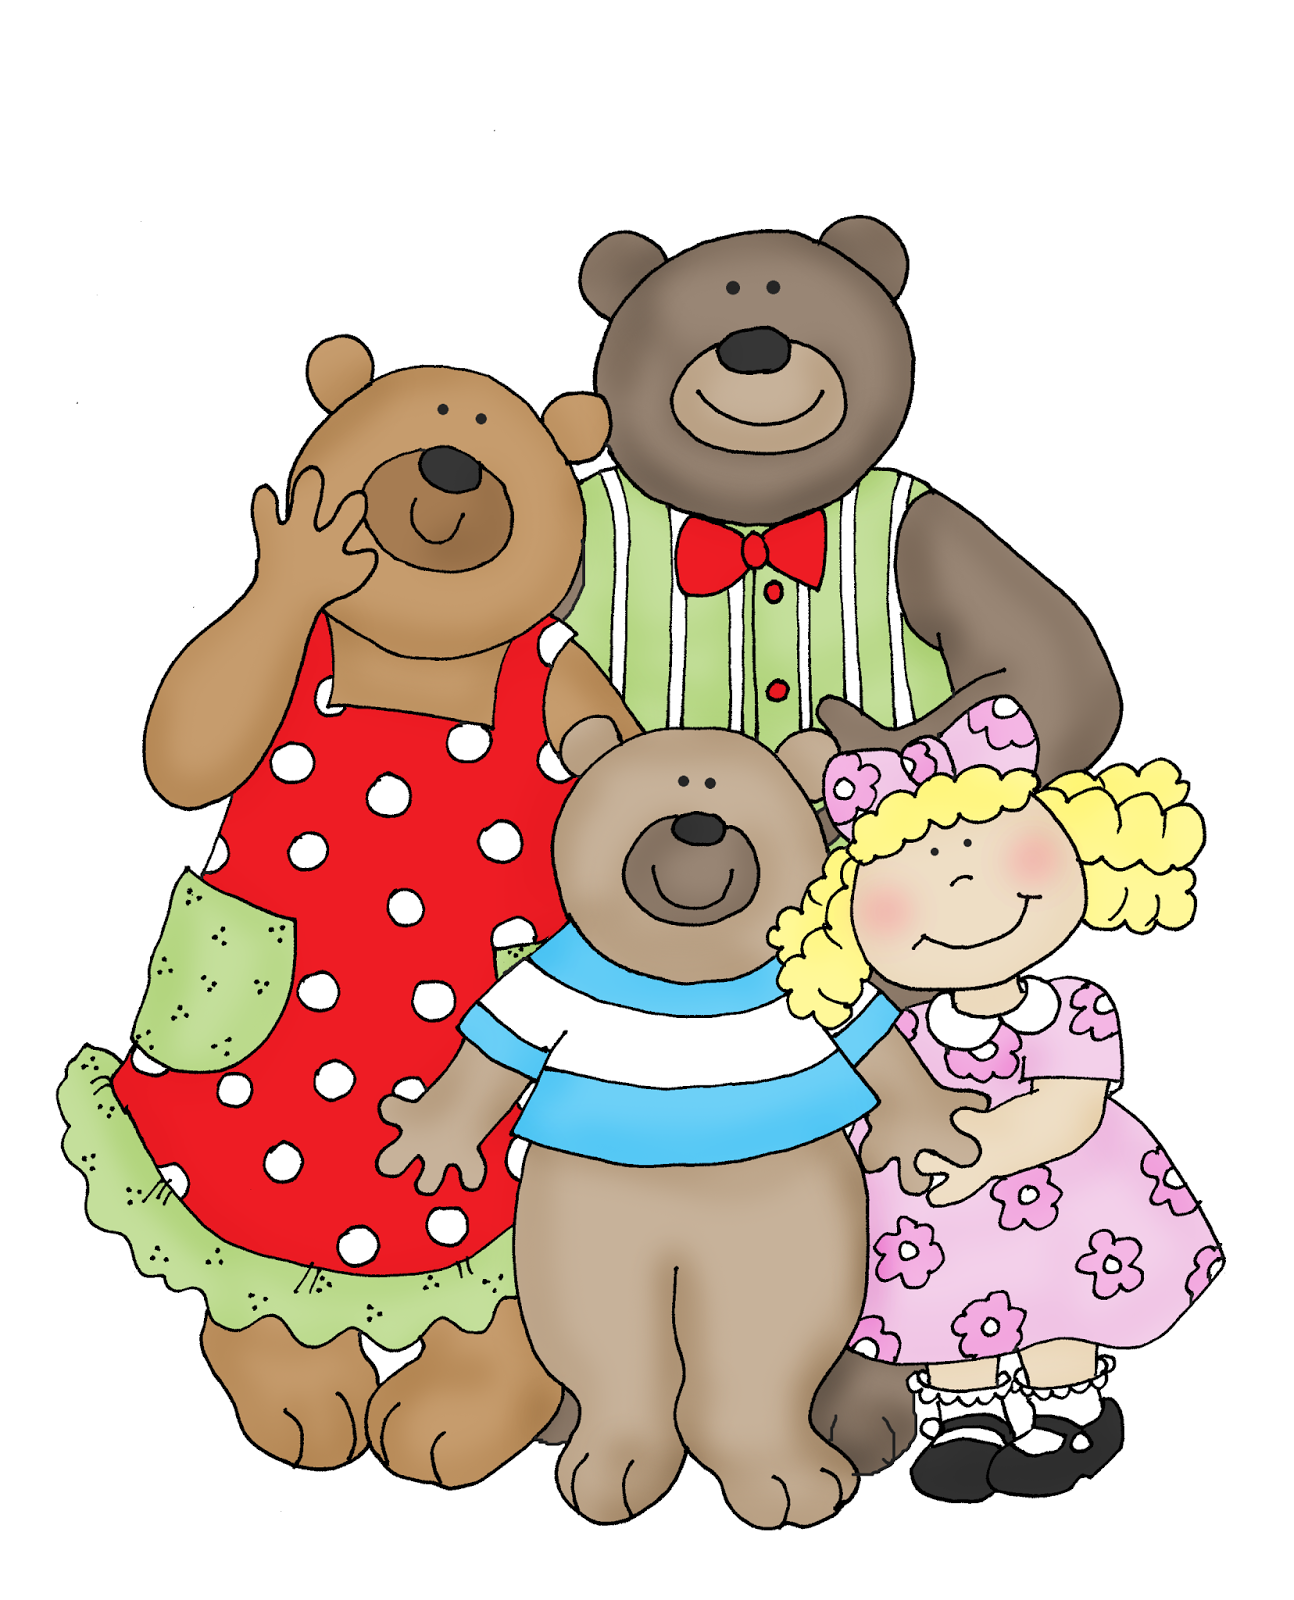 goldilocks and the three bears house mouse in color for card rh pinterest com